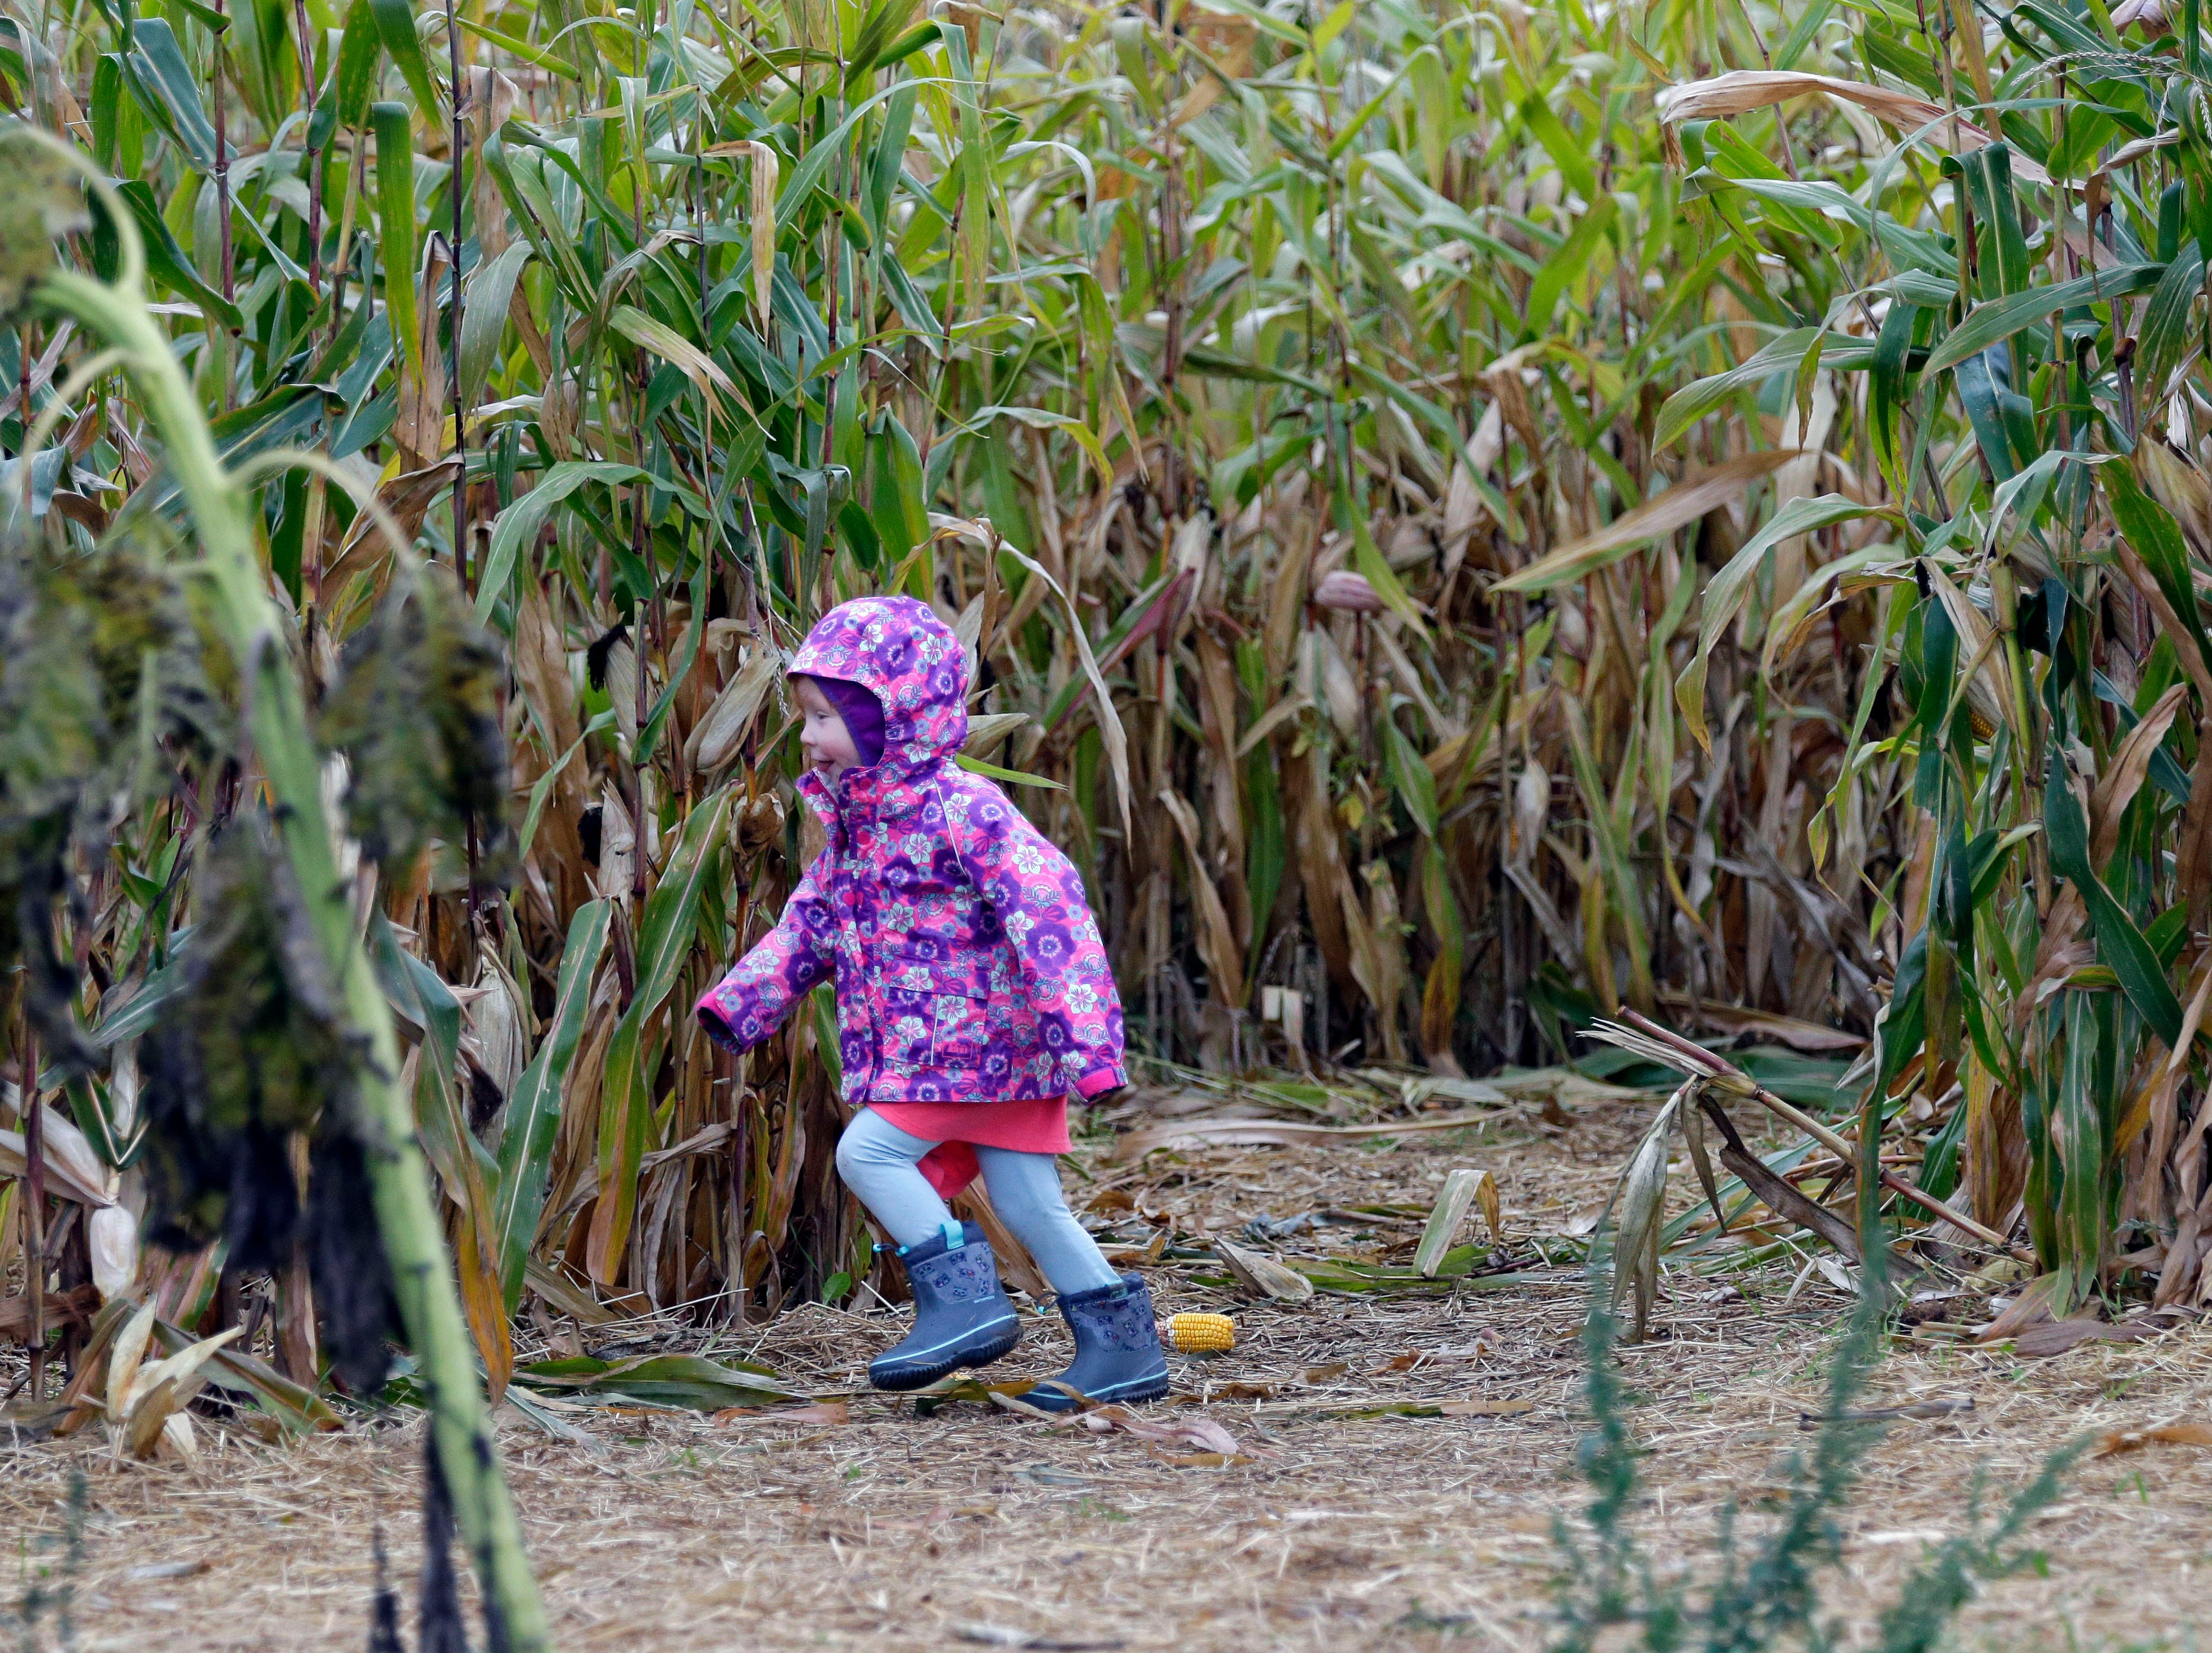 Carly McCallum of Appleton runs through the corn maze Sunday, September 30, 2018, at Star Orchard in Kaukauna, Wis.